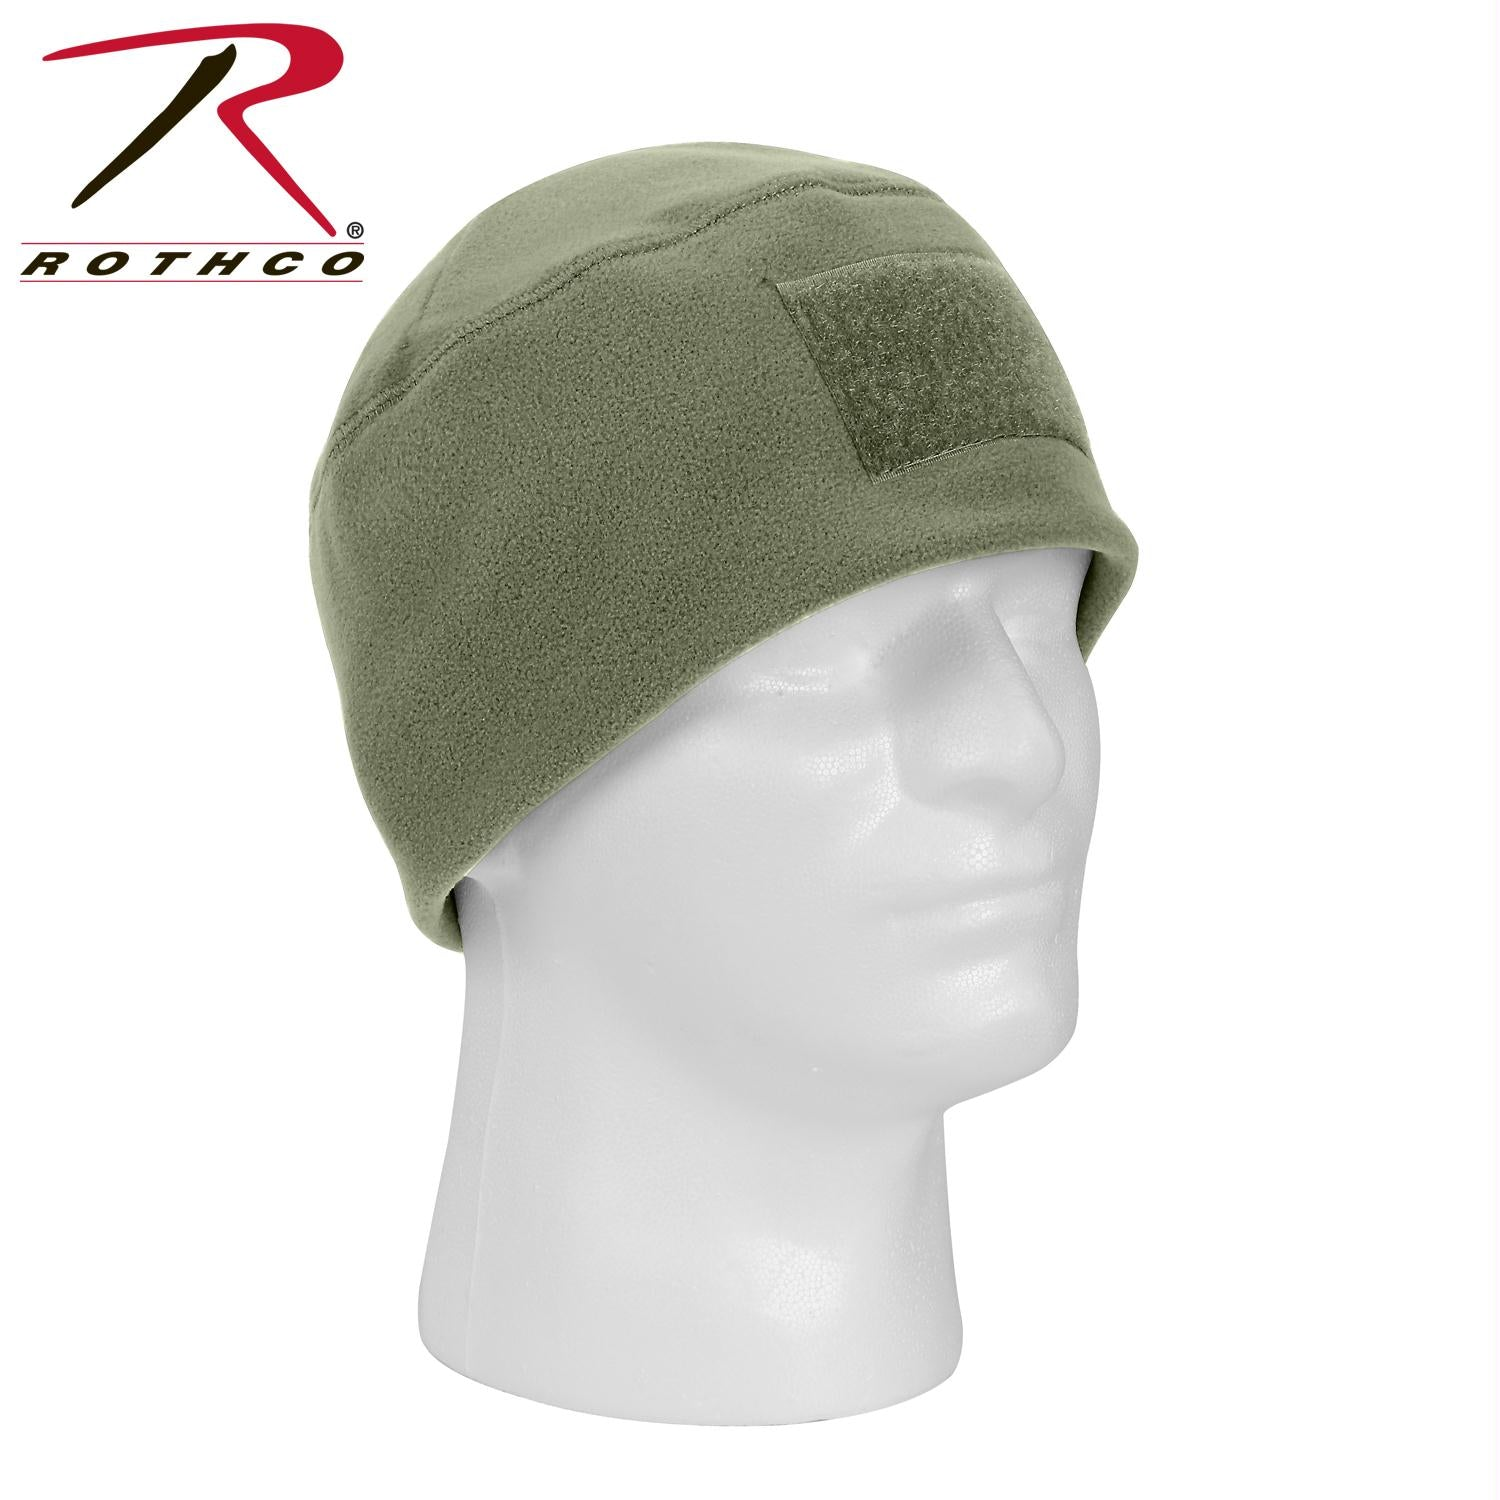 Rothco Tactical Watch Cap - Foliage Green